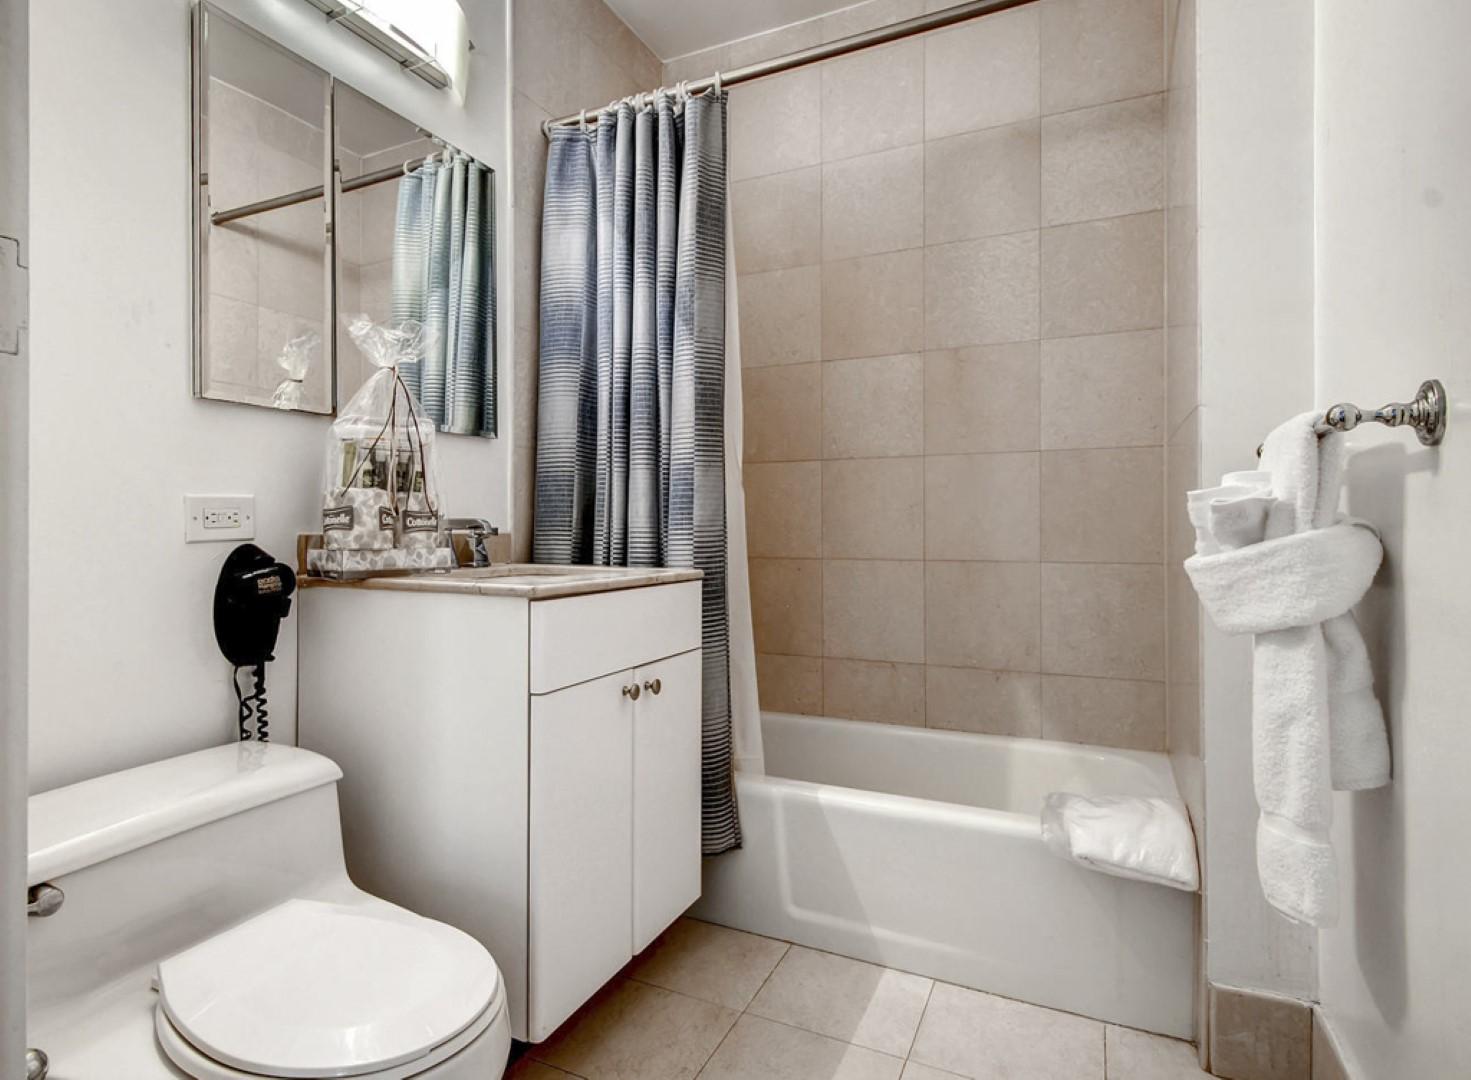 Bathroom at Ritz Plaza Apartments, Times Square, New York